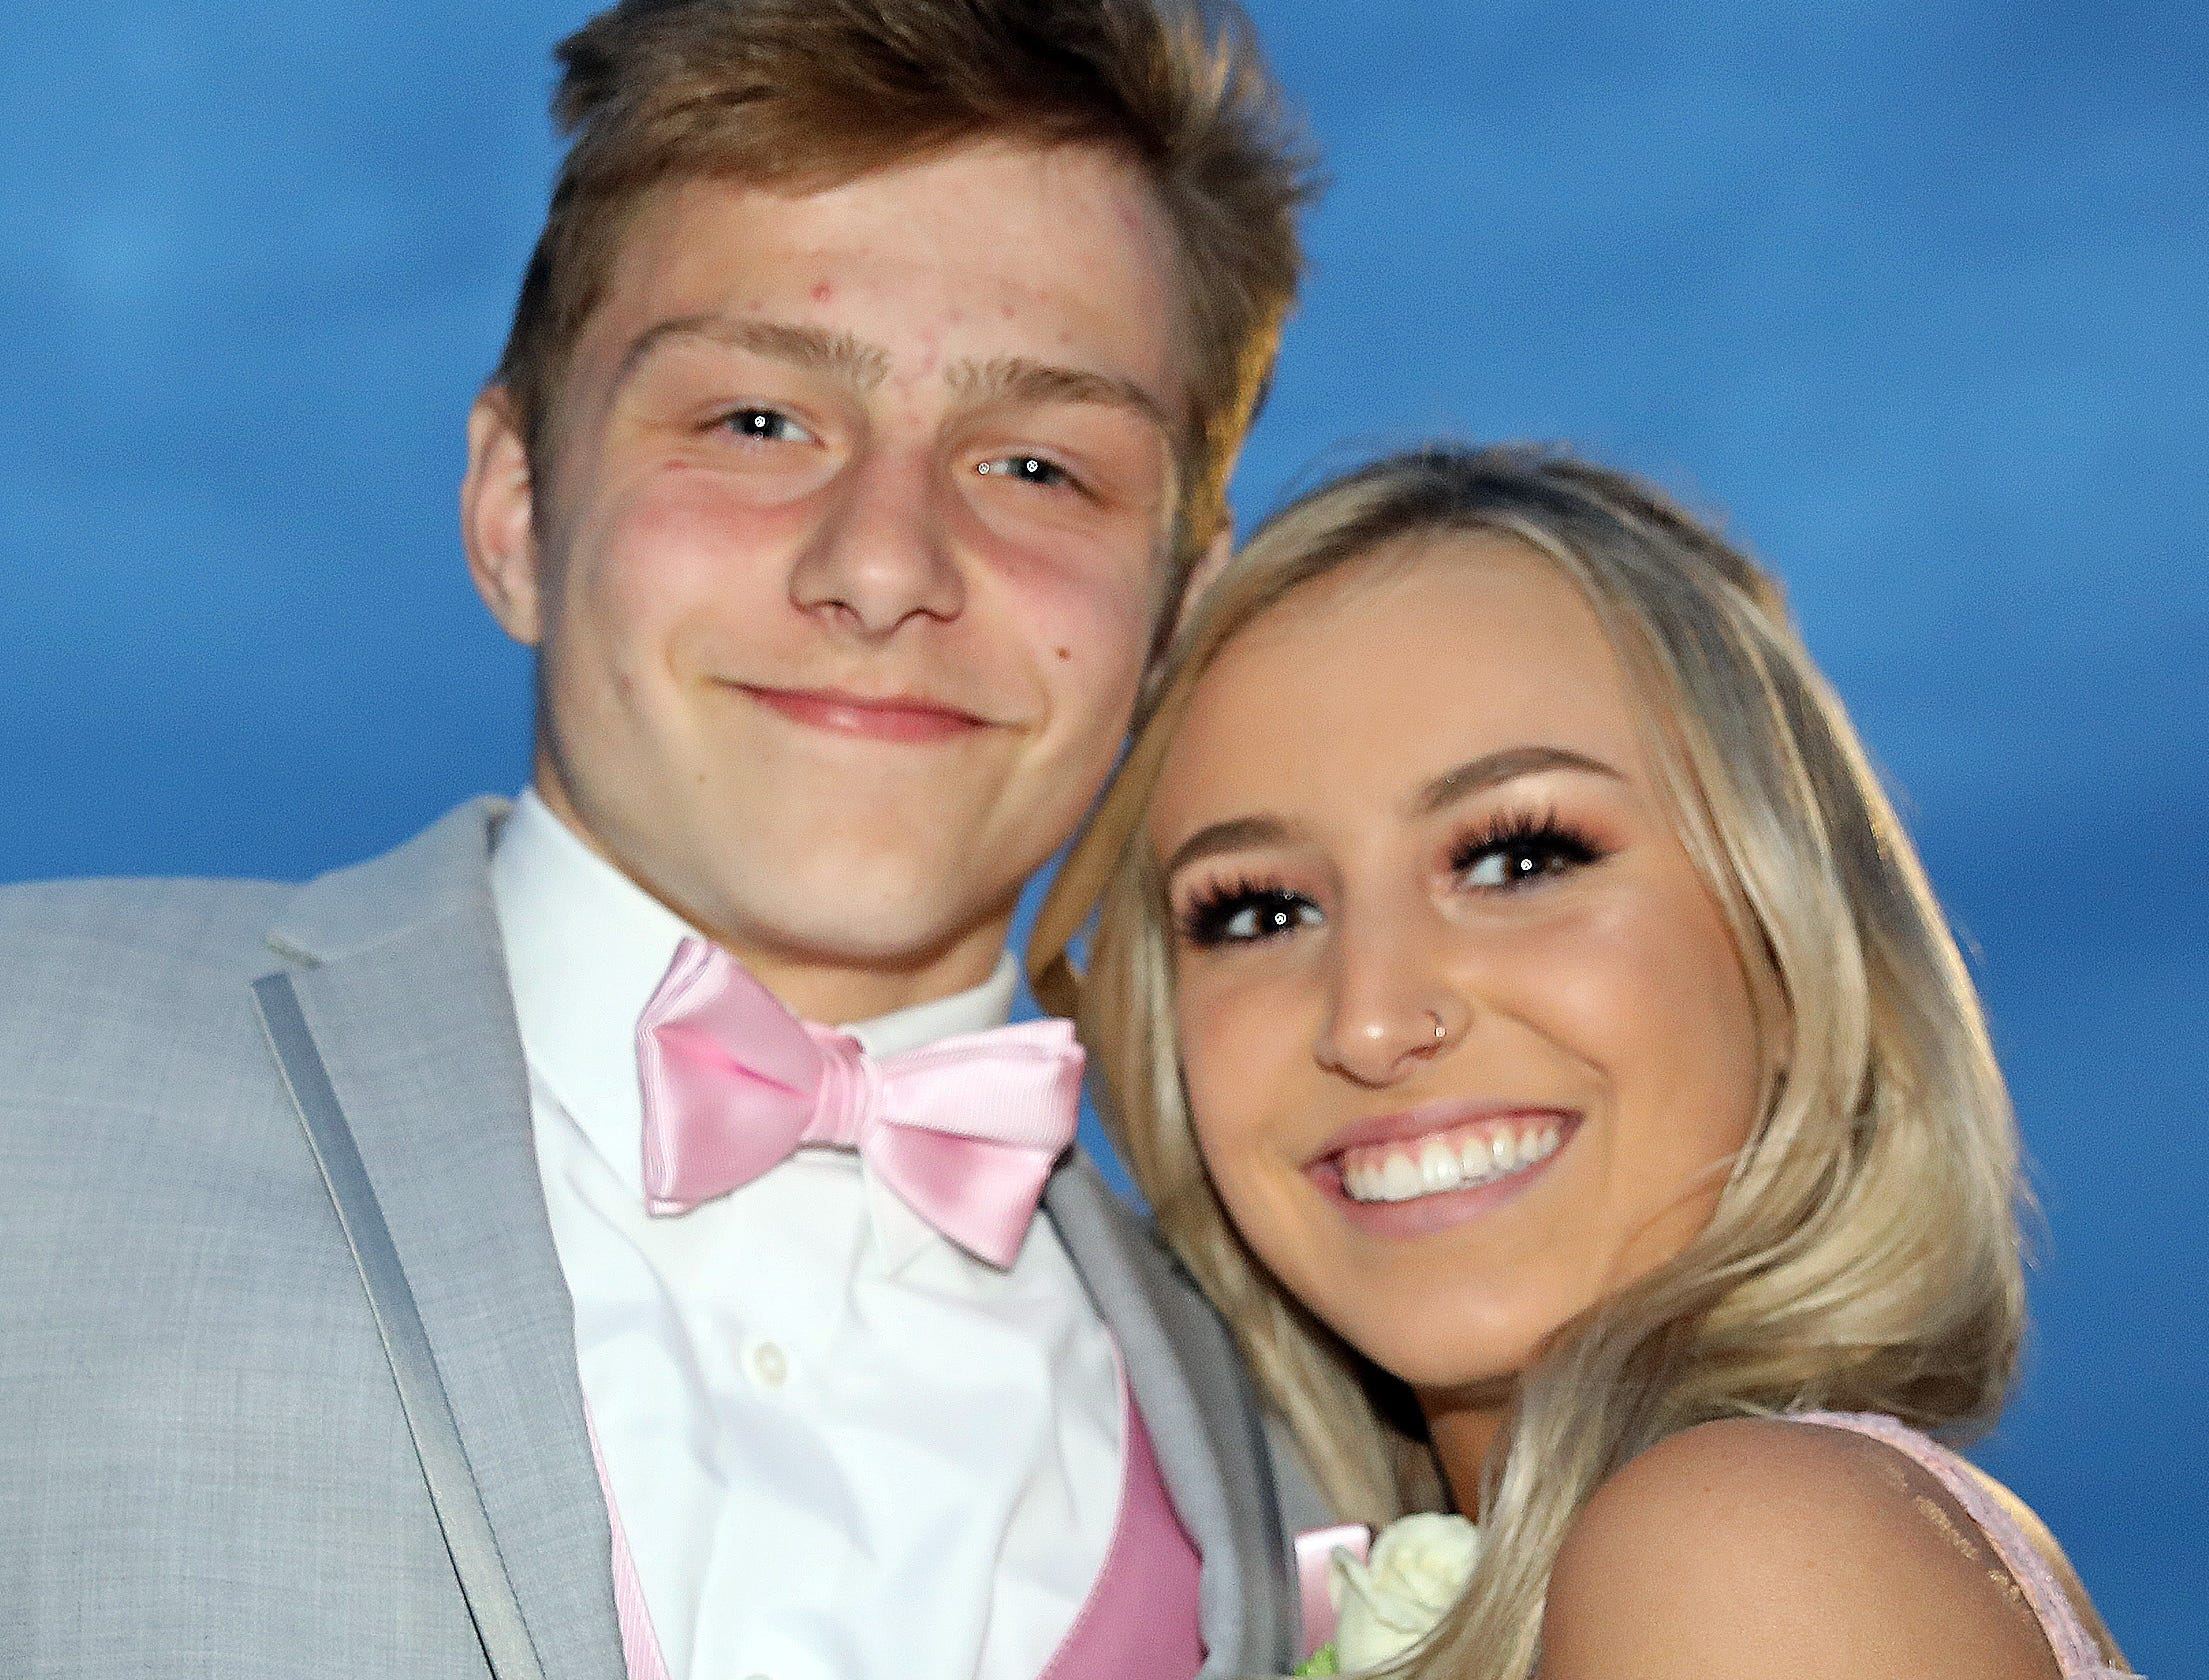 Junior Edi Cokovic and senior Georgia Bell arrive at the Waukee High School Prom at the Ron Pearson Center in West Des Moines on Saturday, April 6, 2019.